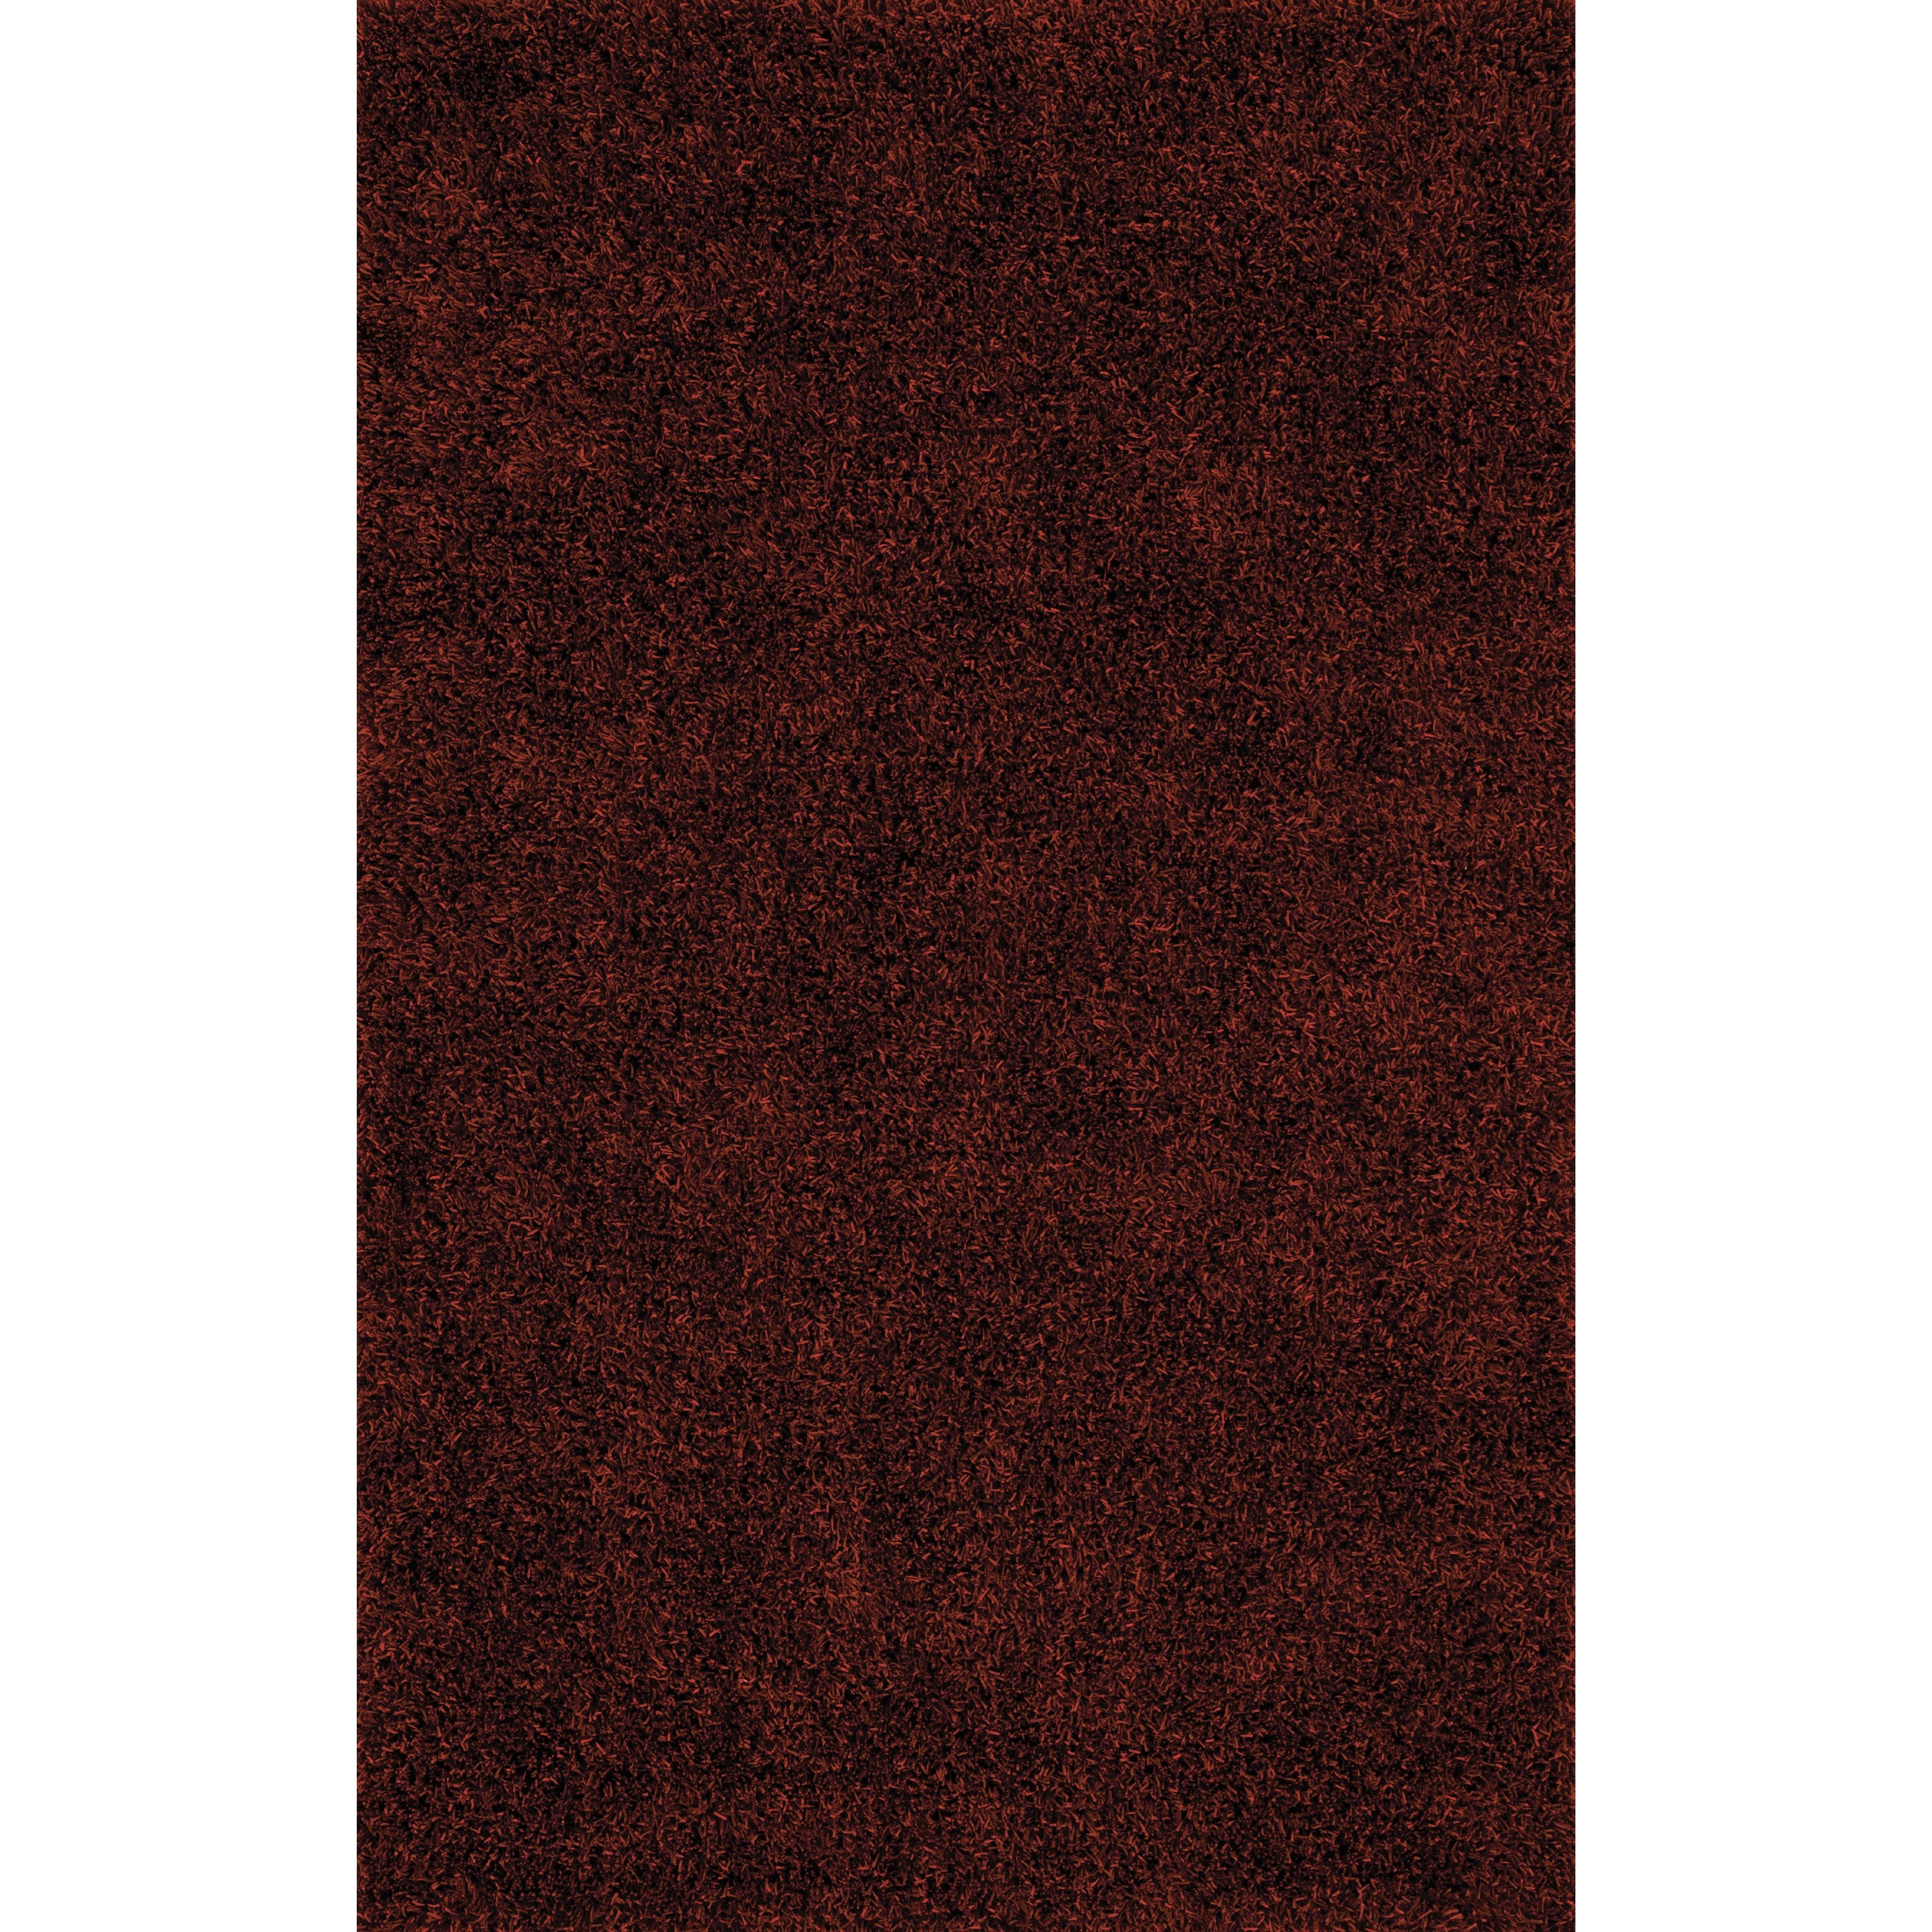 Illusions Paprika 9'X13' Rug by Dalyn at Fashion Furniture